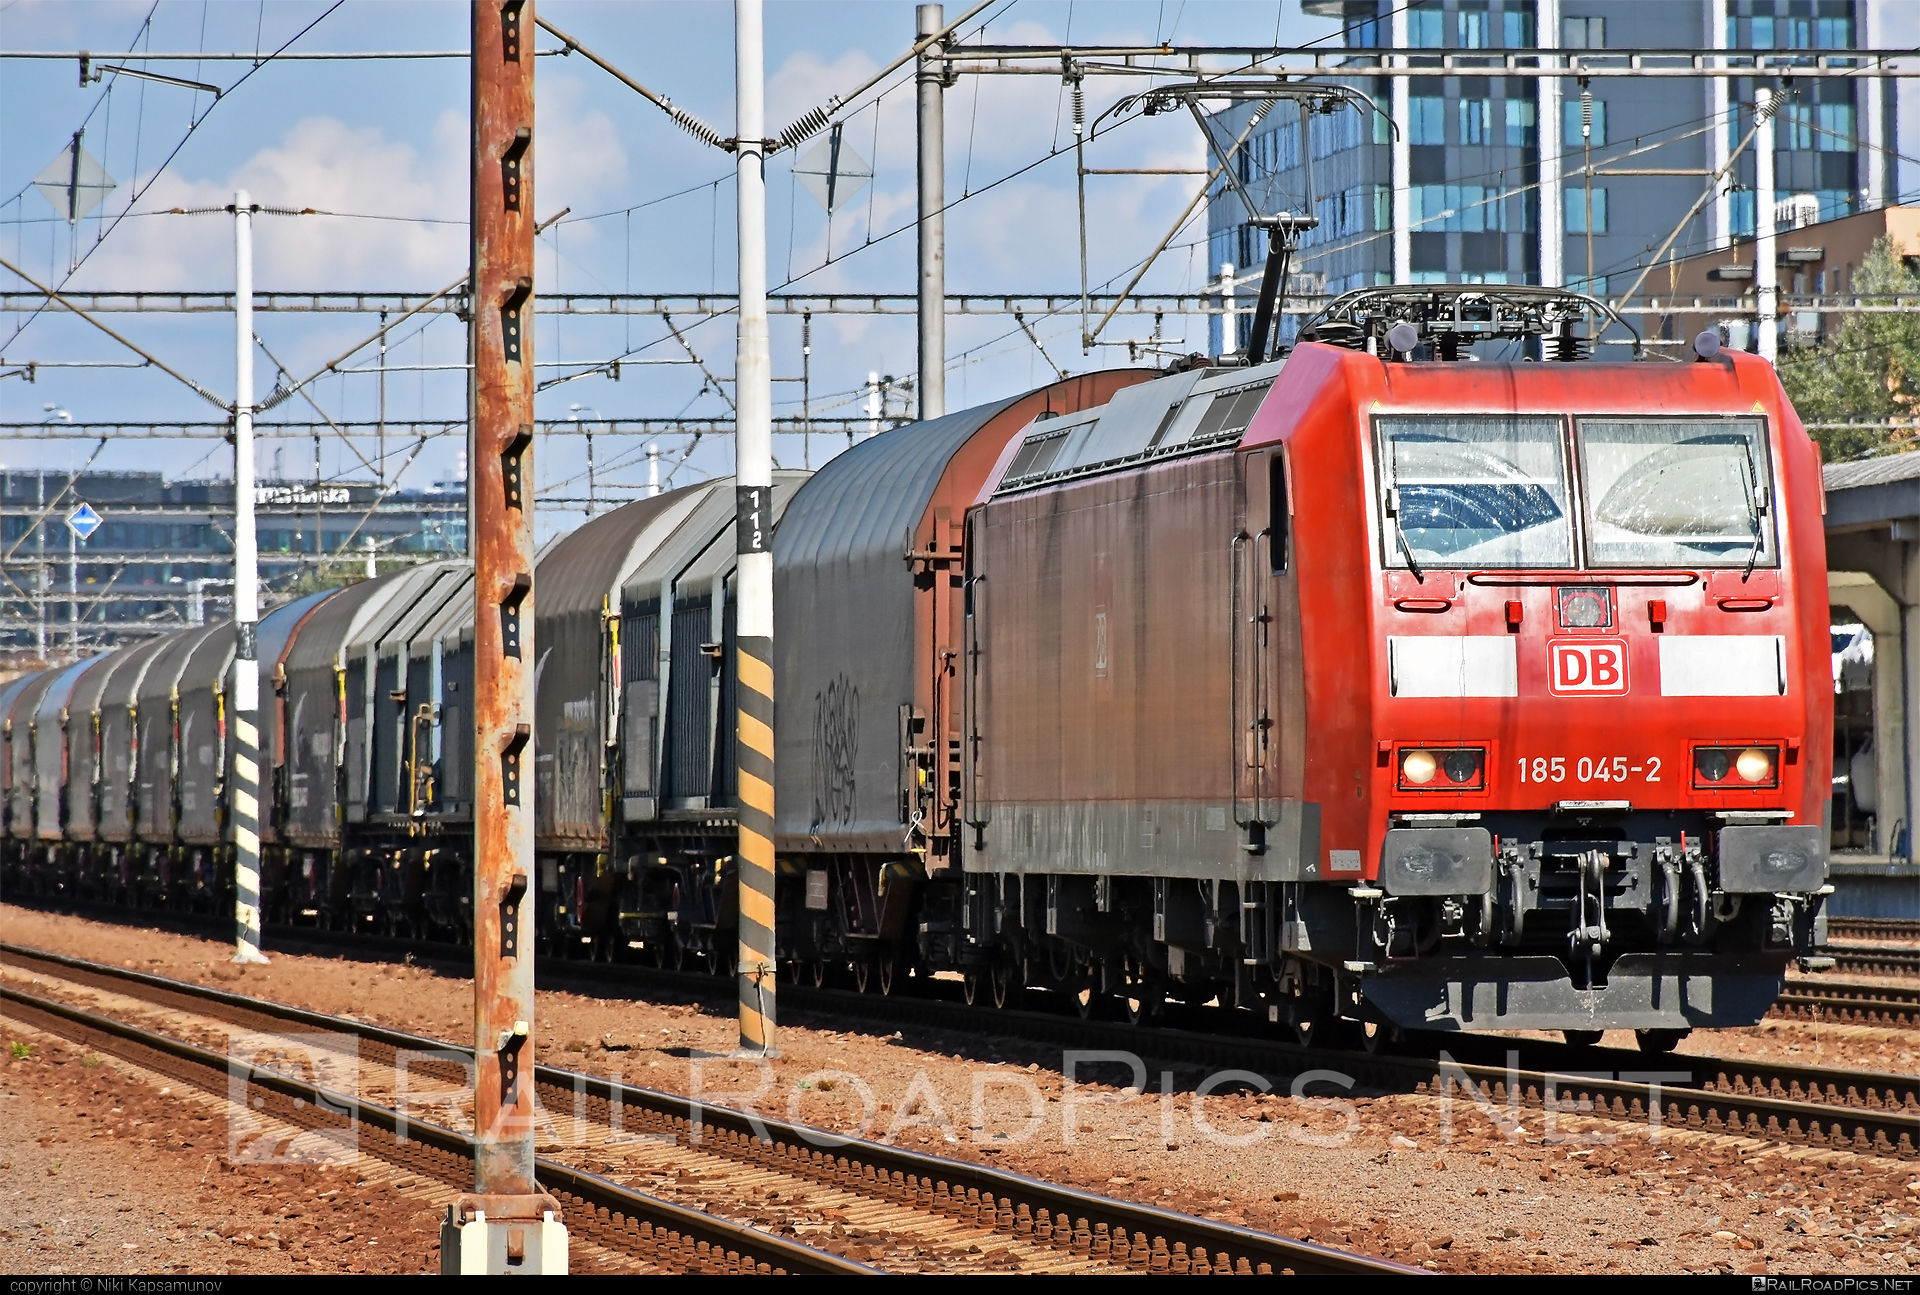 Bombardier TRAXX F140 AC1 - 185 045-2 operated by DB Cargo AG #bombardier #bombardiertraxx #db #dbcargo #dbcargoag #traxx #traxxf140 #traxxf140ac #traxxf140ac1